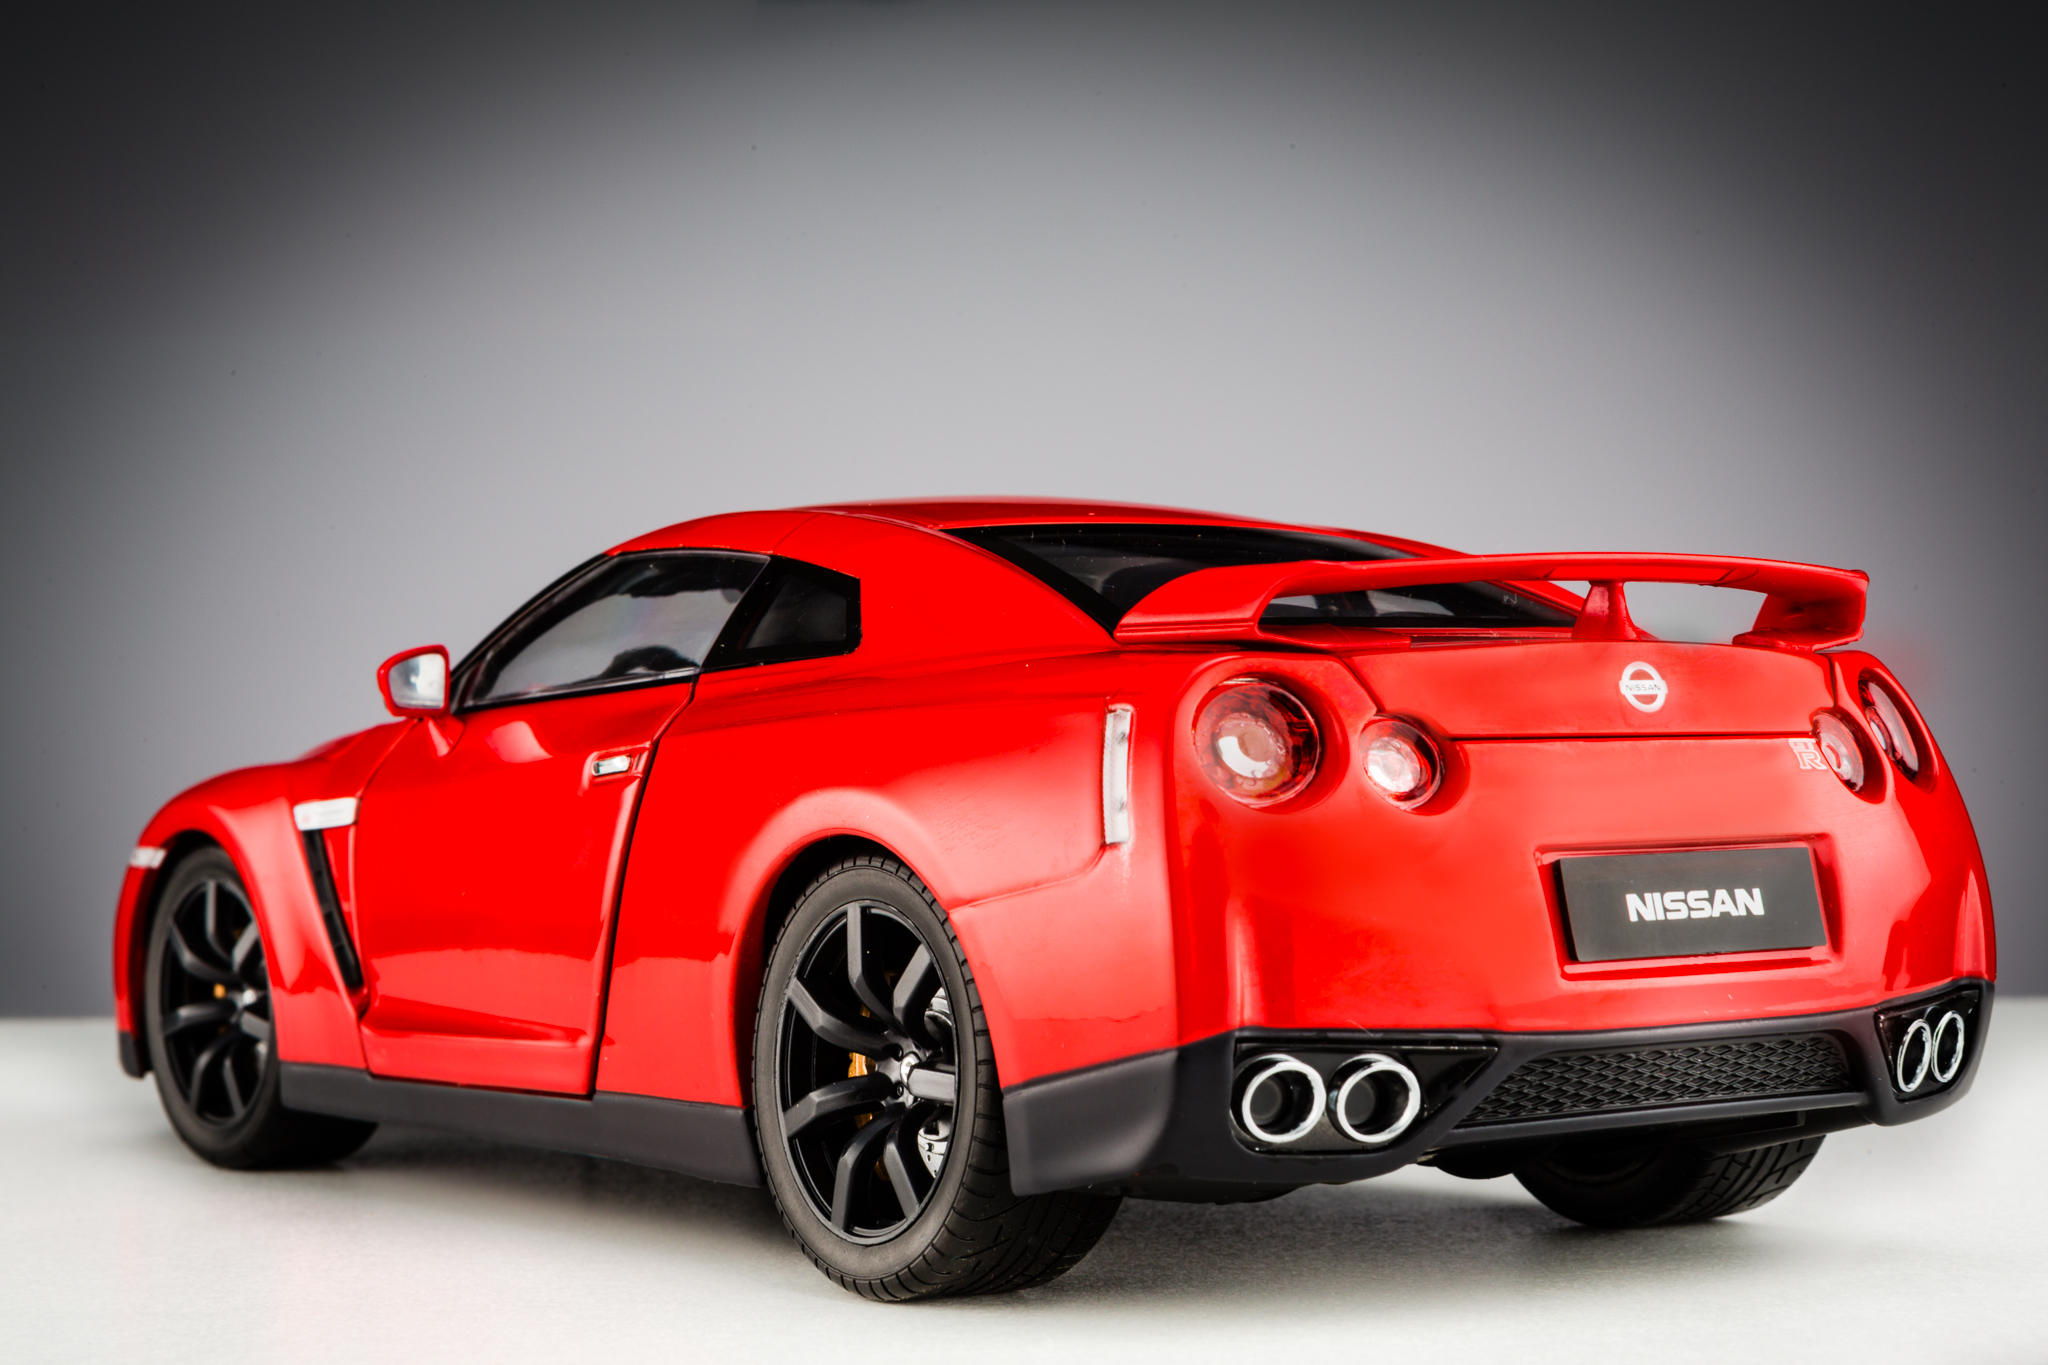 nissan gt r r35 2008. Black Bedroom Furniture Sets. Home Design Ideas